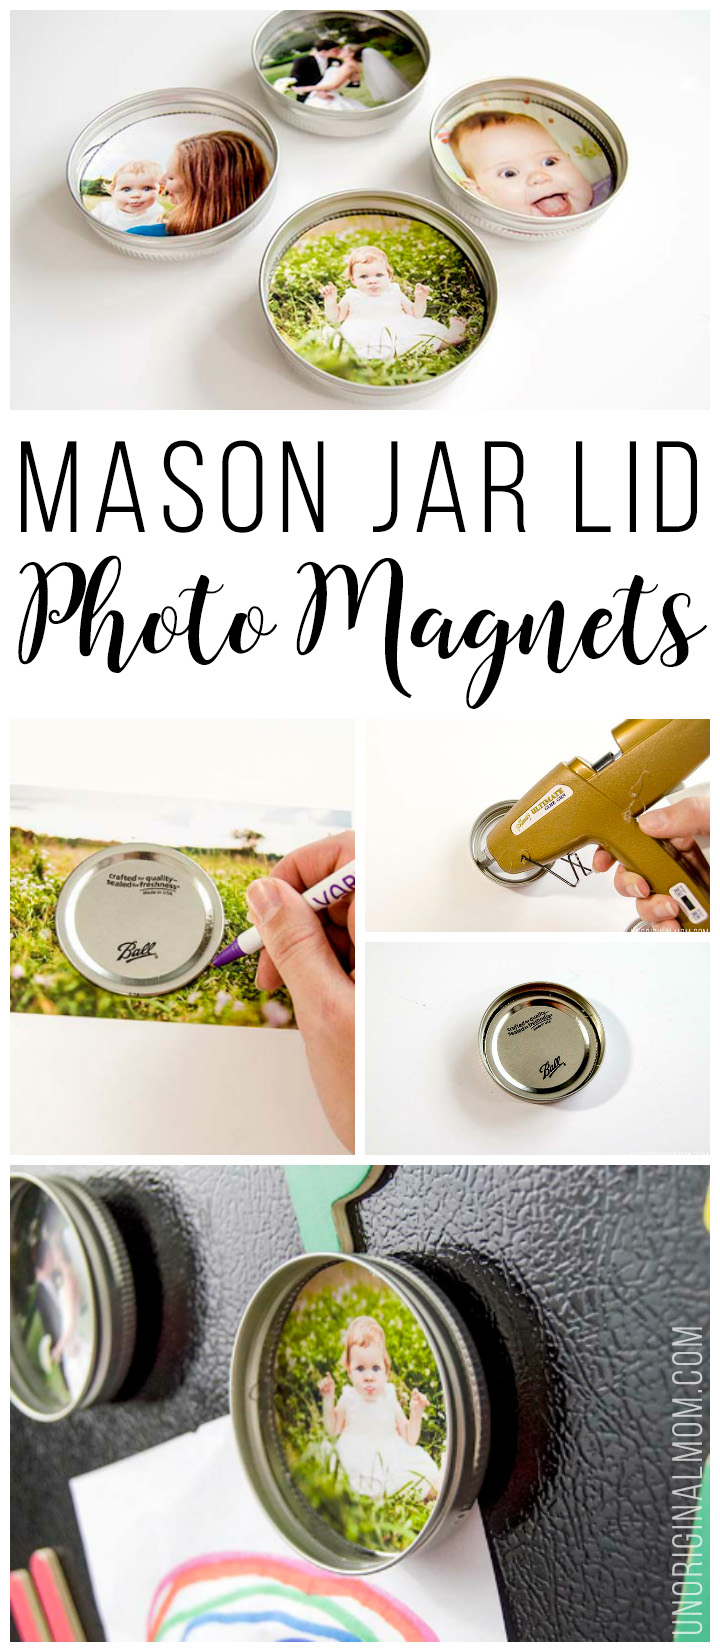 Upcycle your leftover mason jar lids with these super cute mason jar lid photo magnets! They'd make great gifts too! #handmadegiftidea #masonjars #magnets #diygifts